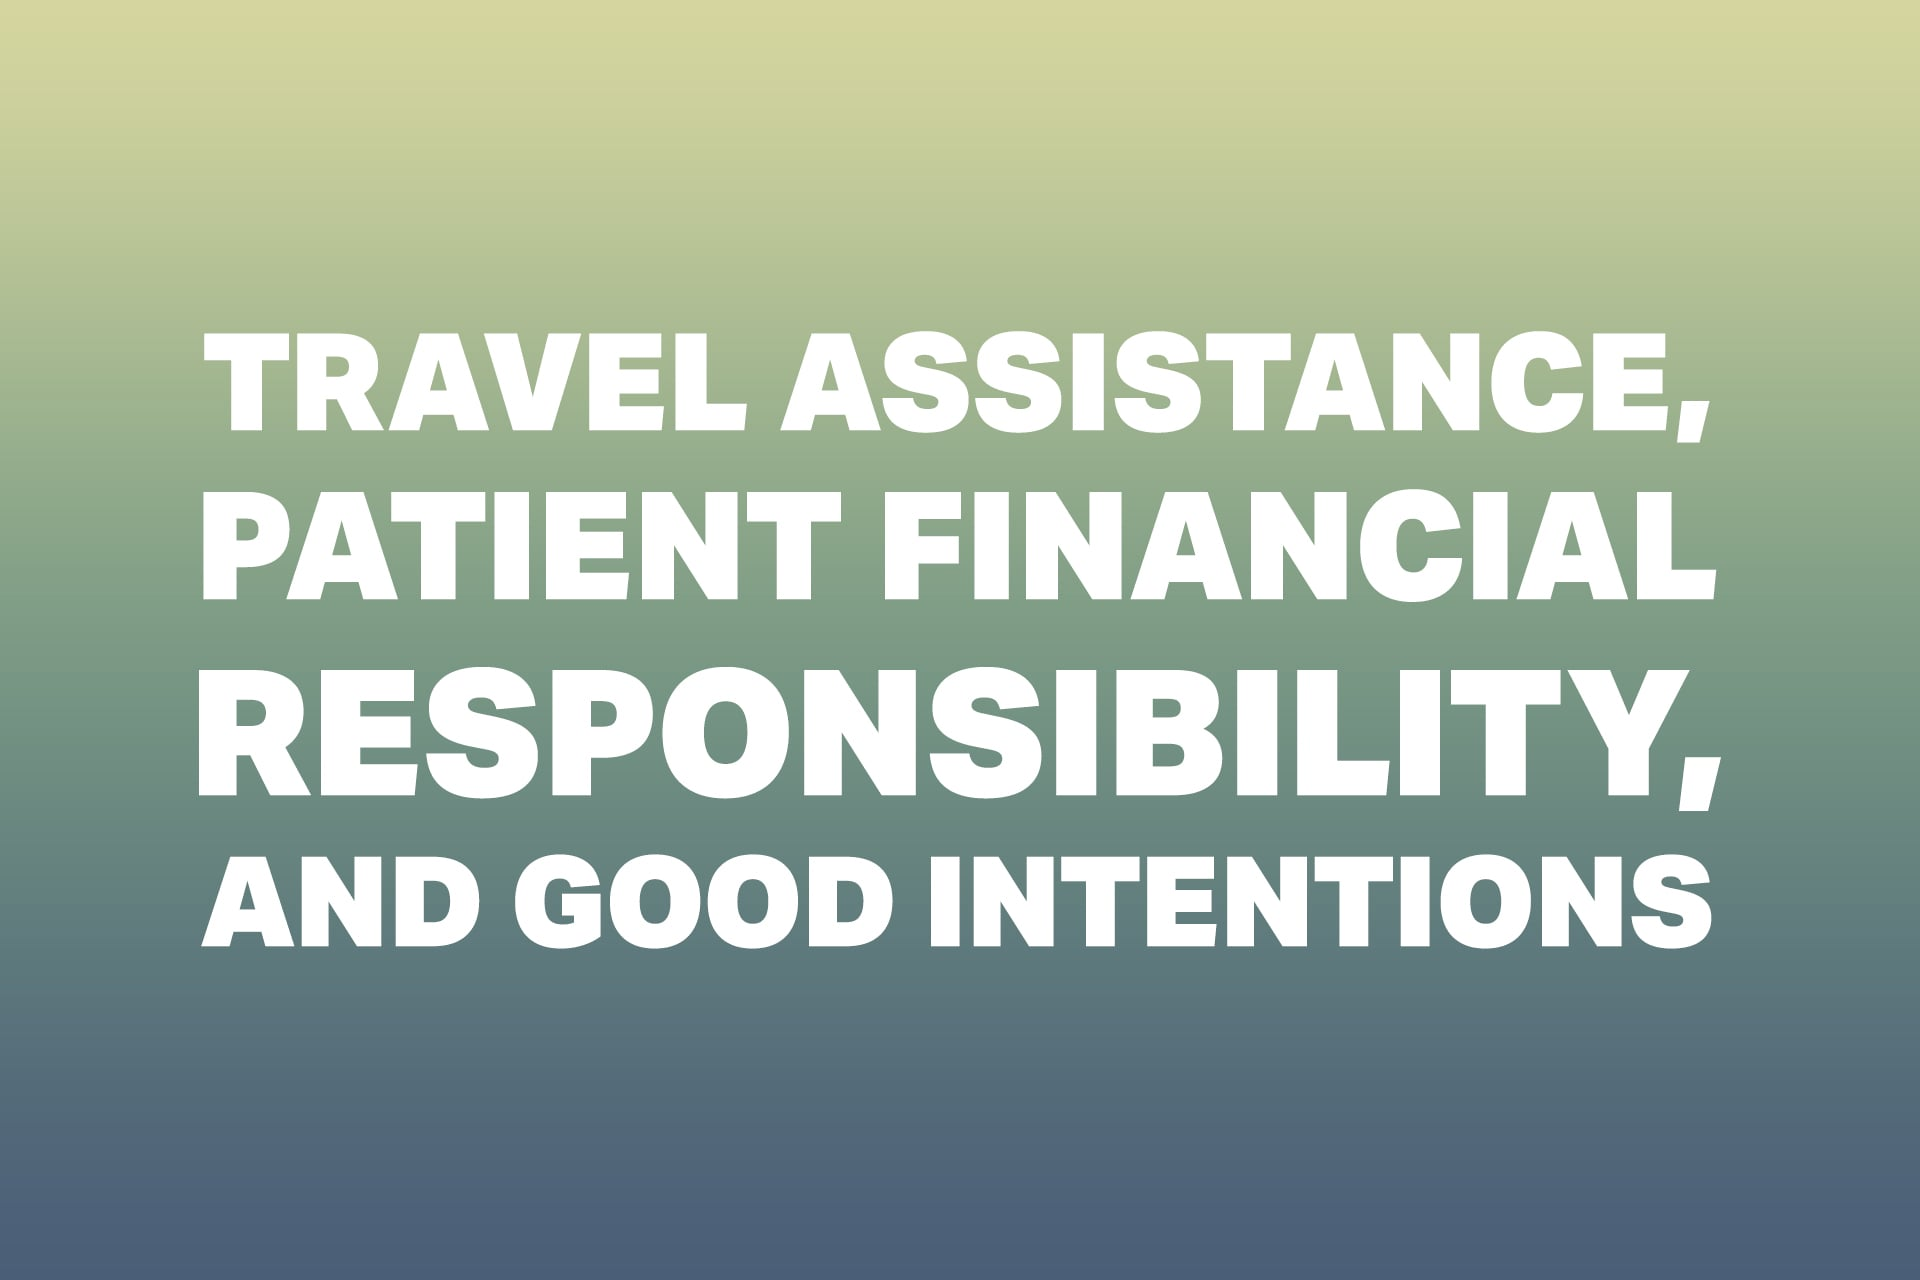 Travel Assistance, Patient Financial Responsibility, and Good Intentions